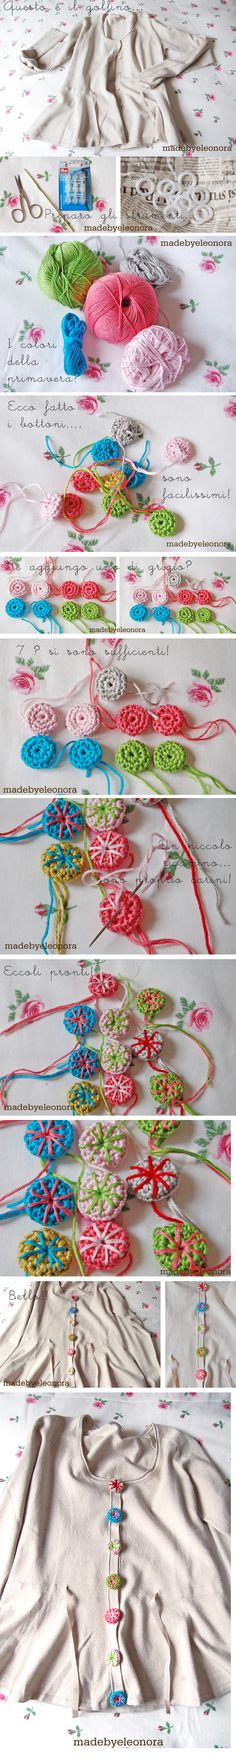 Crochet Bottons - Photo Tutorial ❥ 4U // hf